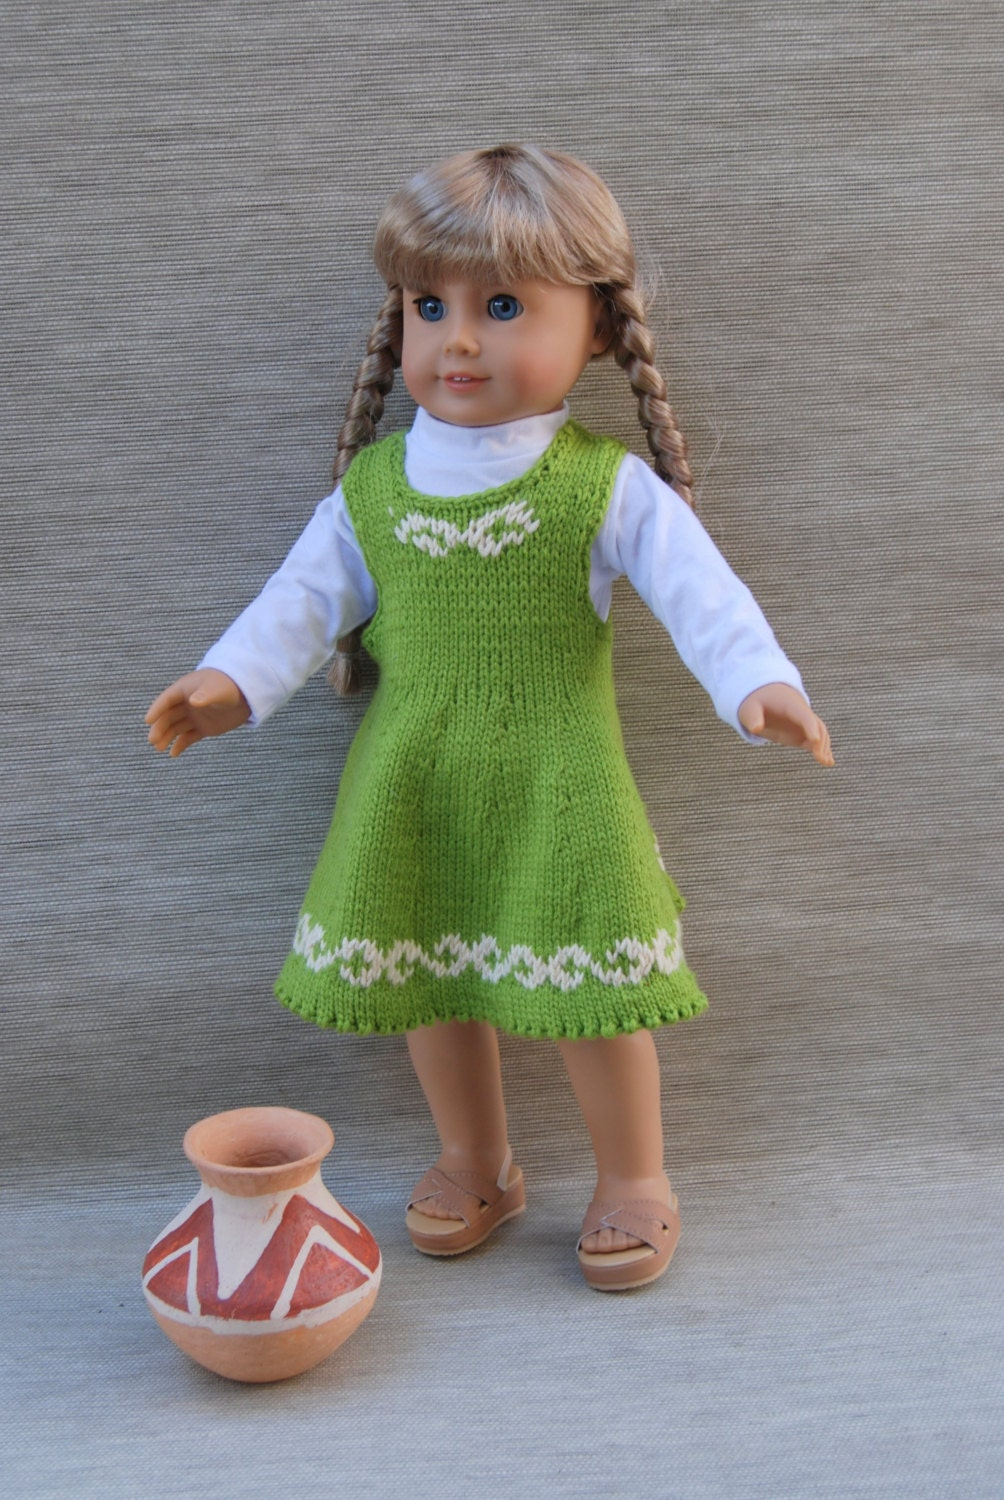 JUMPER for your DOLL downloadable knitting by knittingfordolls